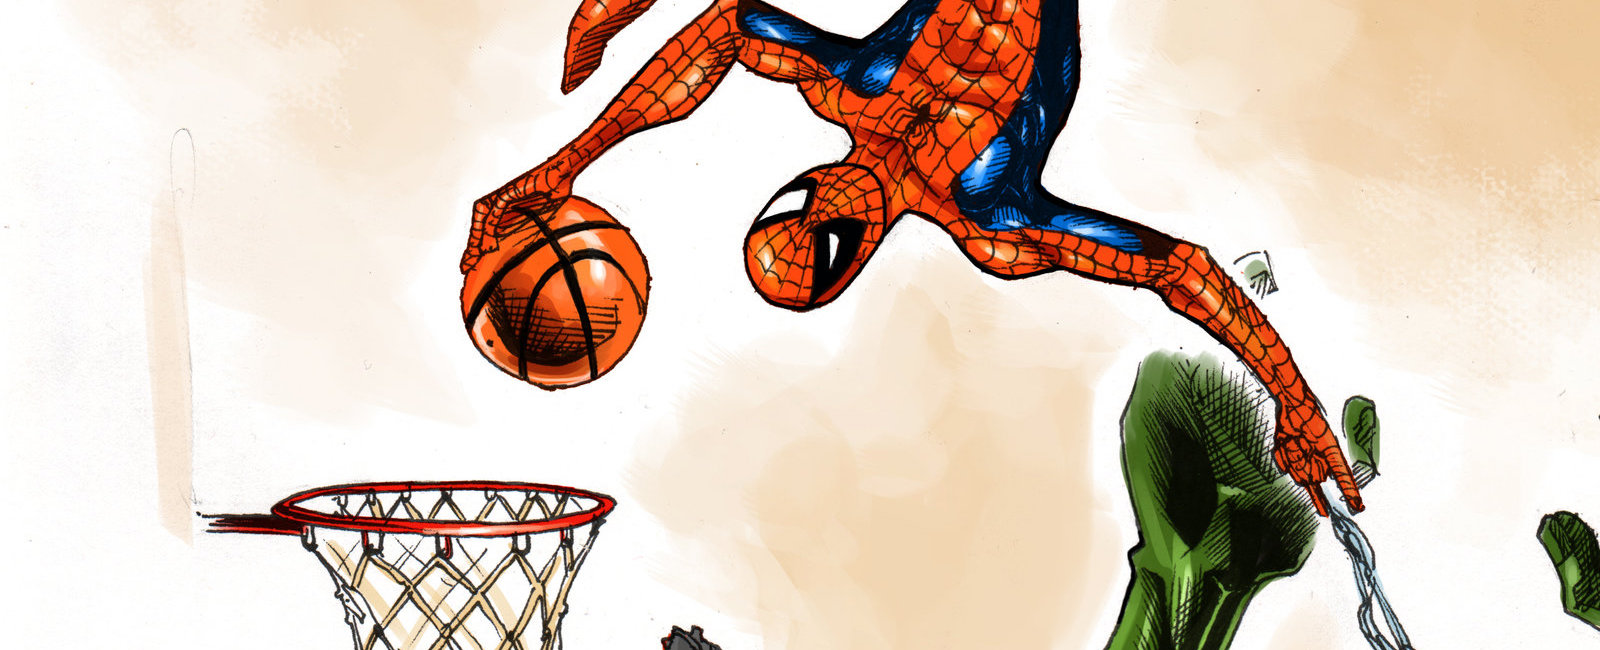 NBA Logos Get A Superhero Redesign In Awesome New Artwork